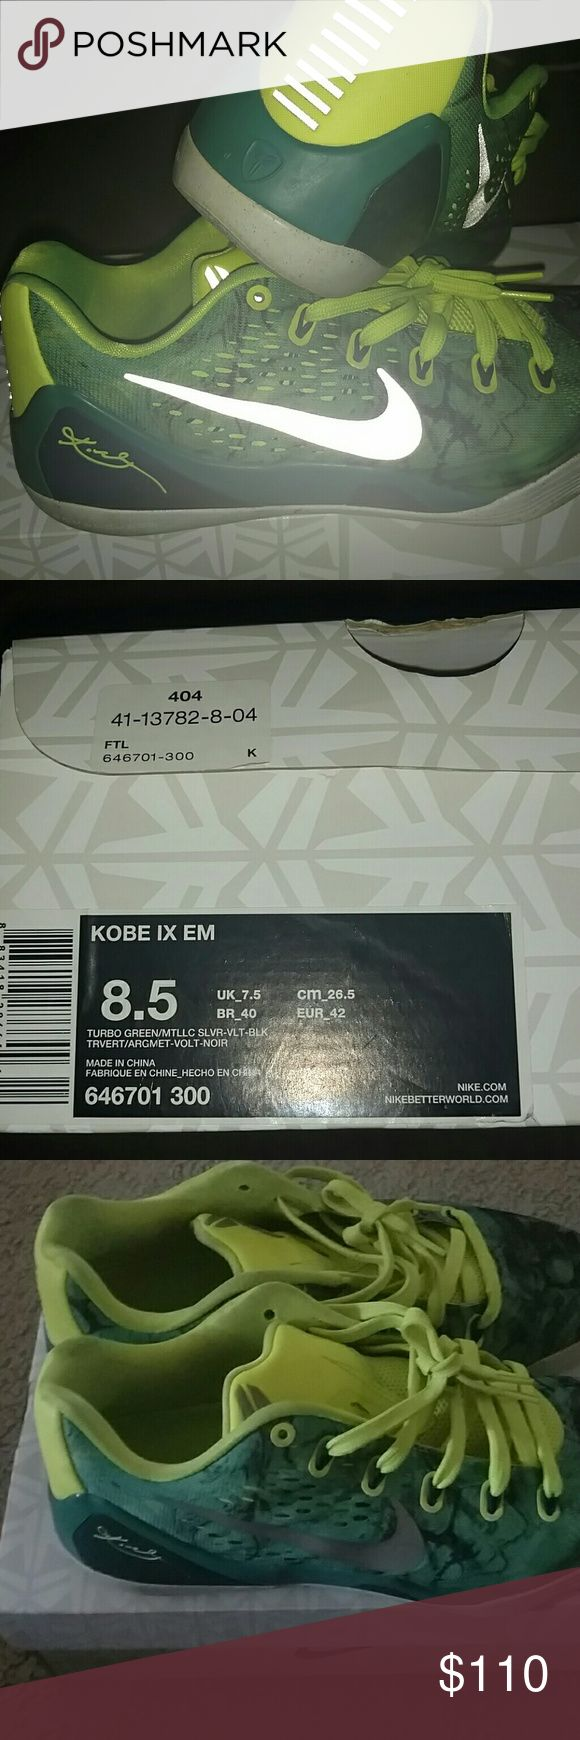 Kobe 9 EM Size 8.5  Great condition Comes with original box Price negotiable Comment if any questions here to help Nike Shoes Sneakers